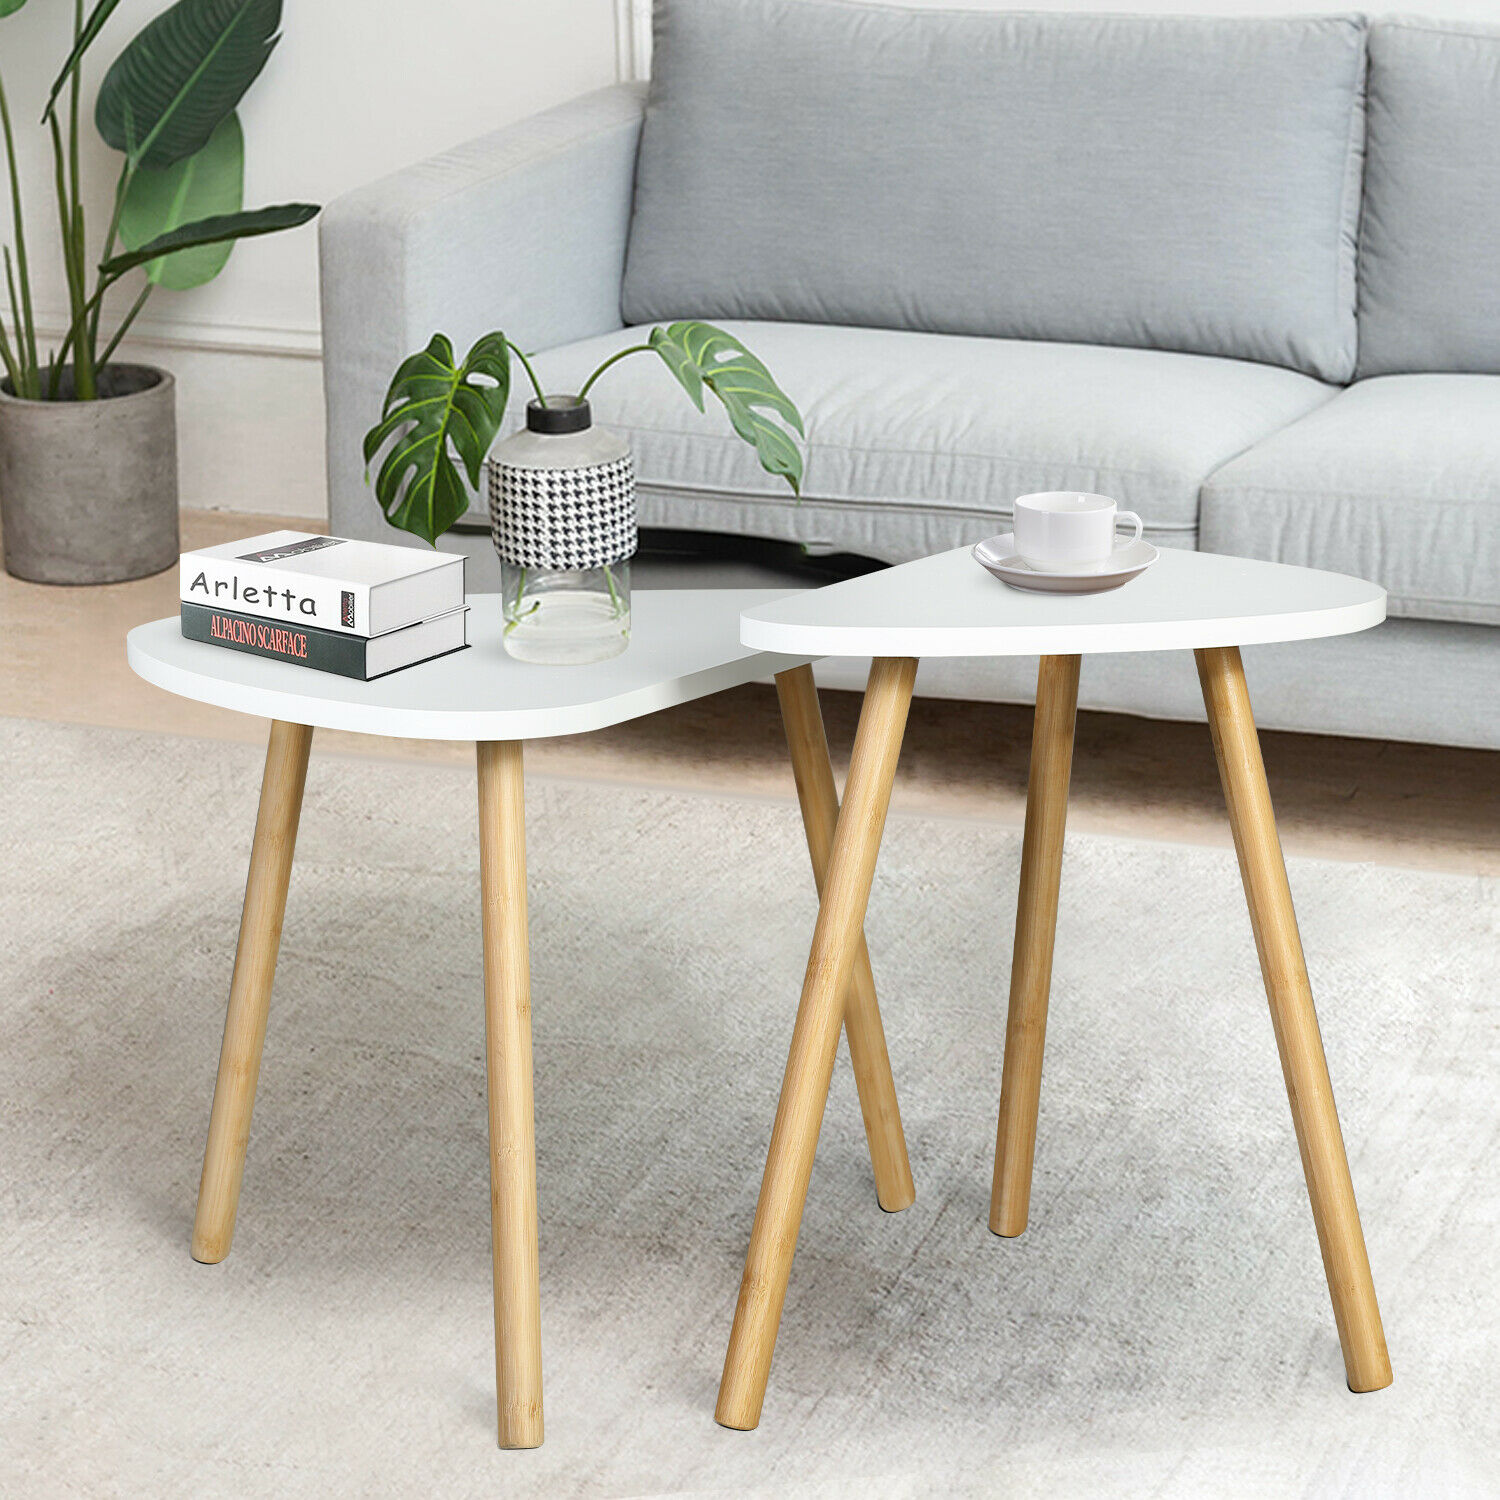 Side Table Set of 2, Bamboo End Table for Living Room Side Table for Bedroom